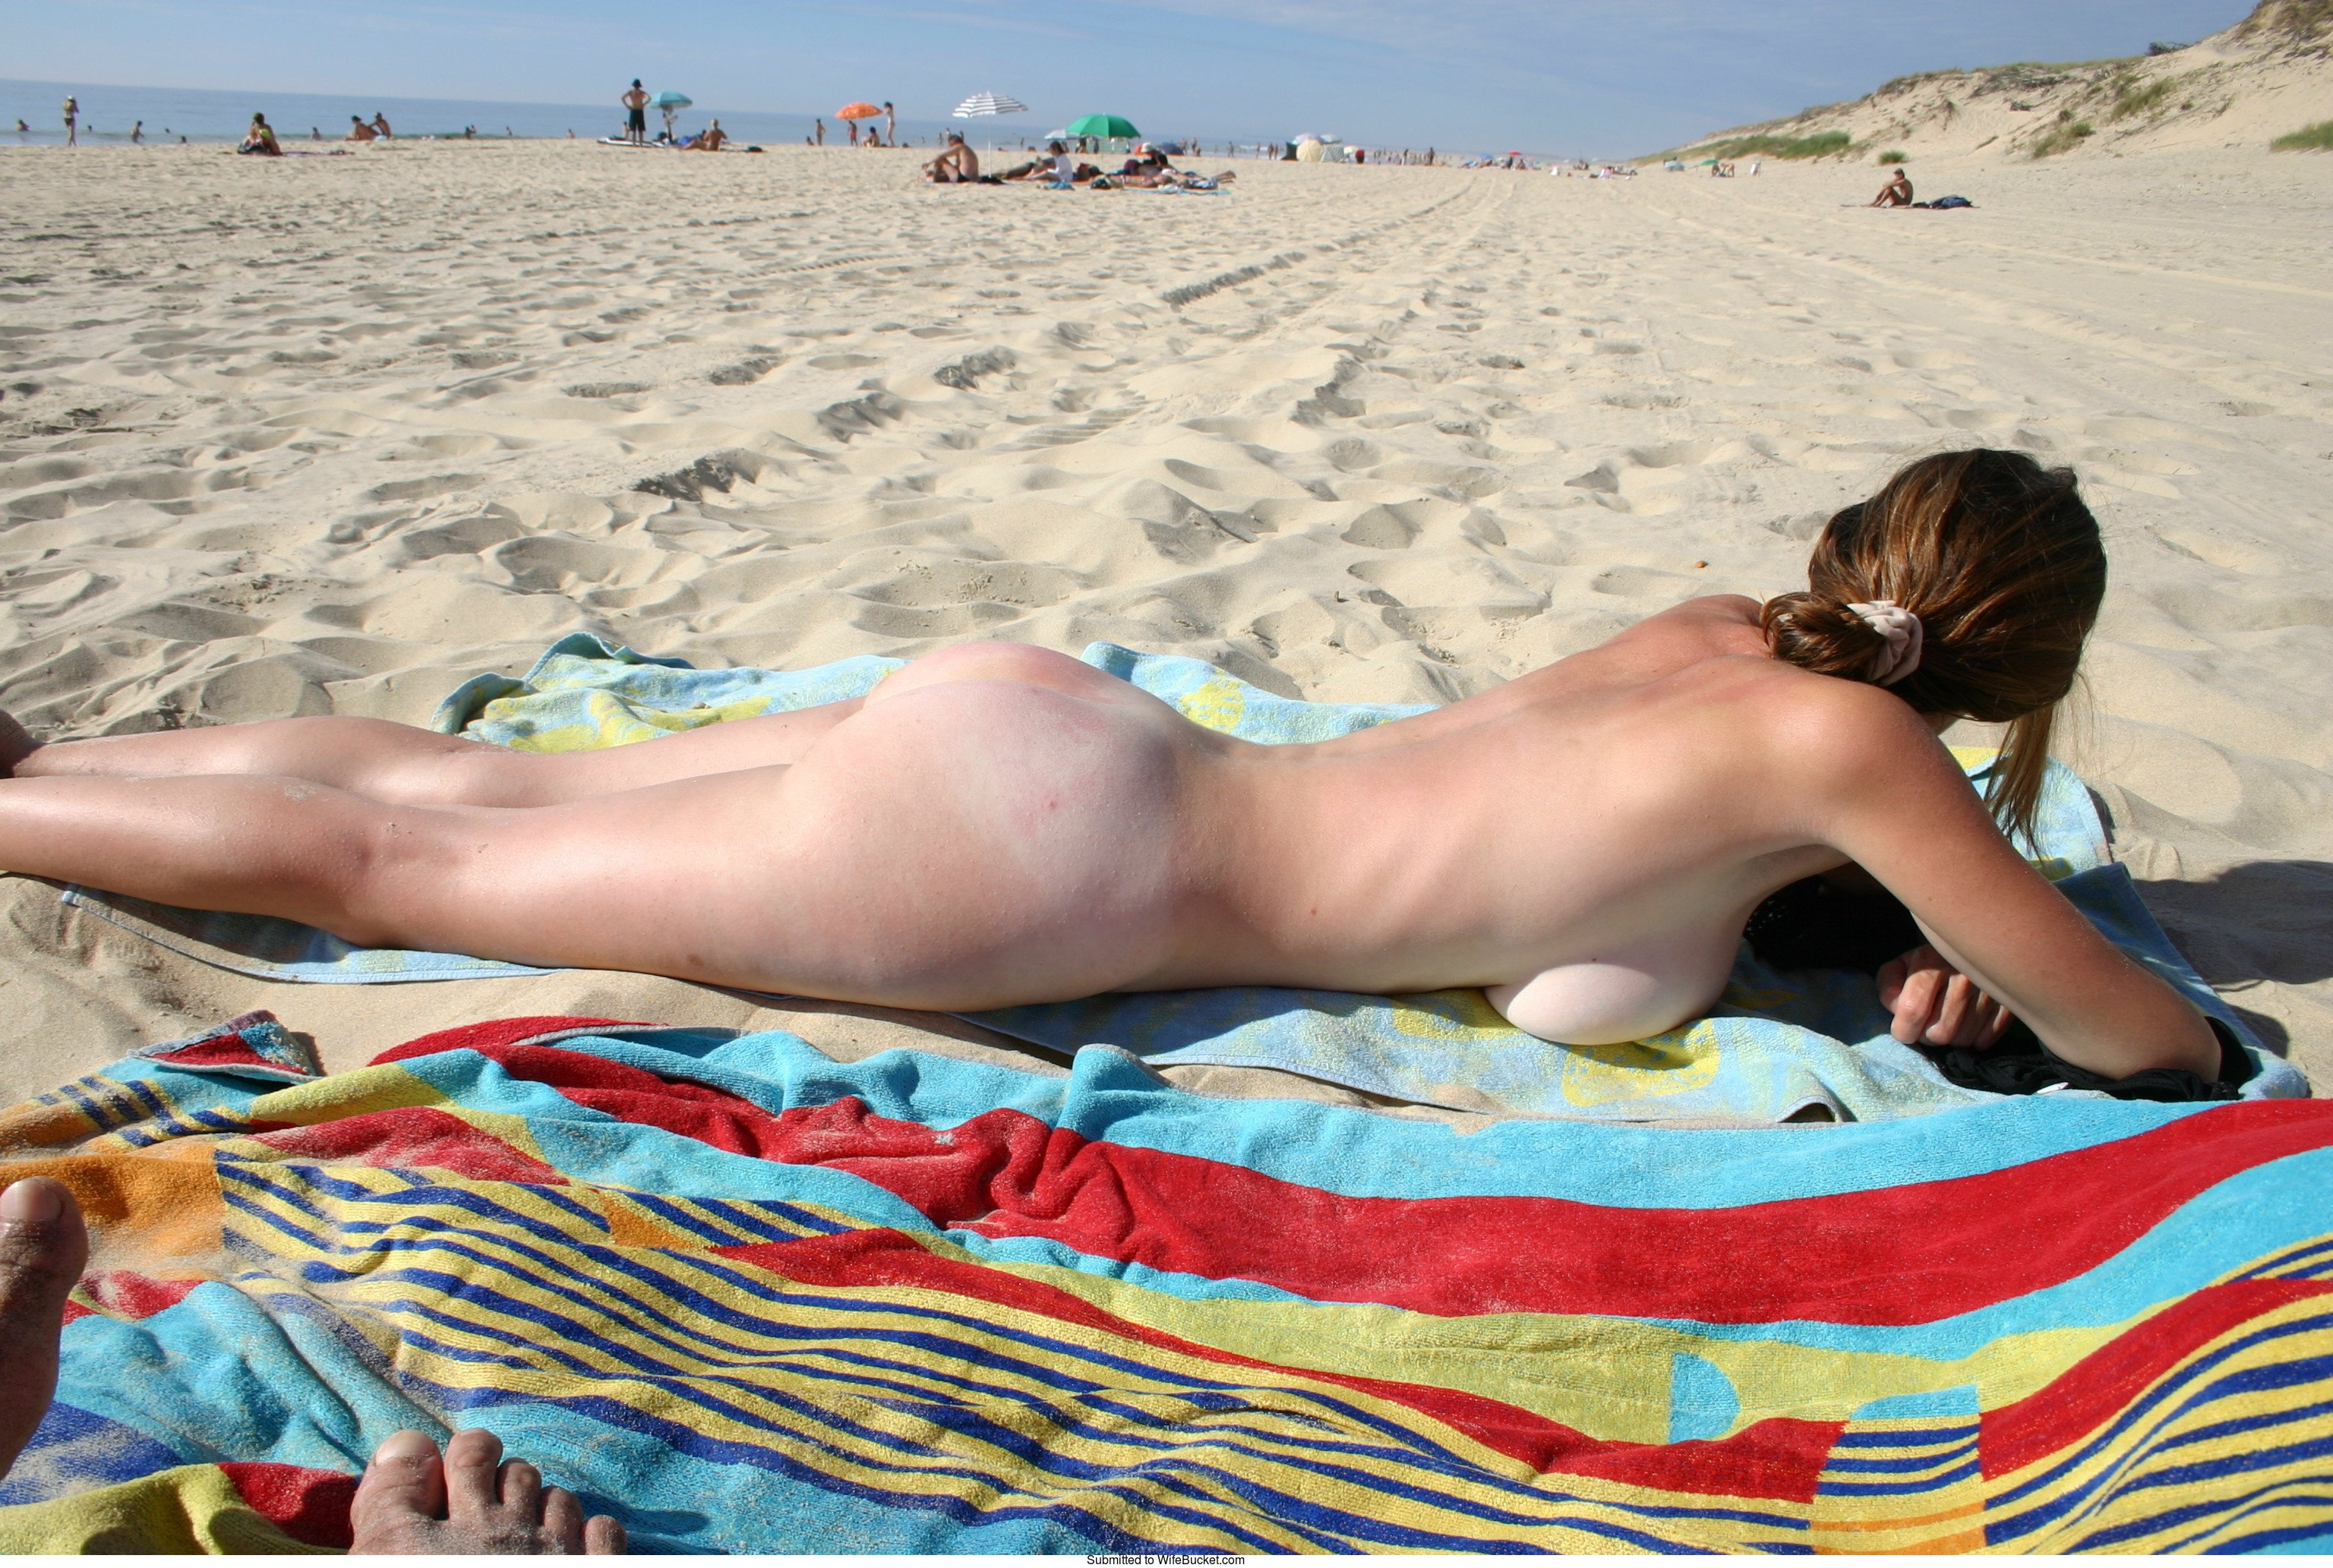 Ass nudist beach wife hot black